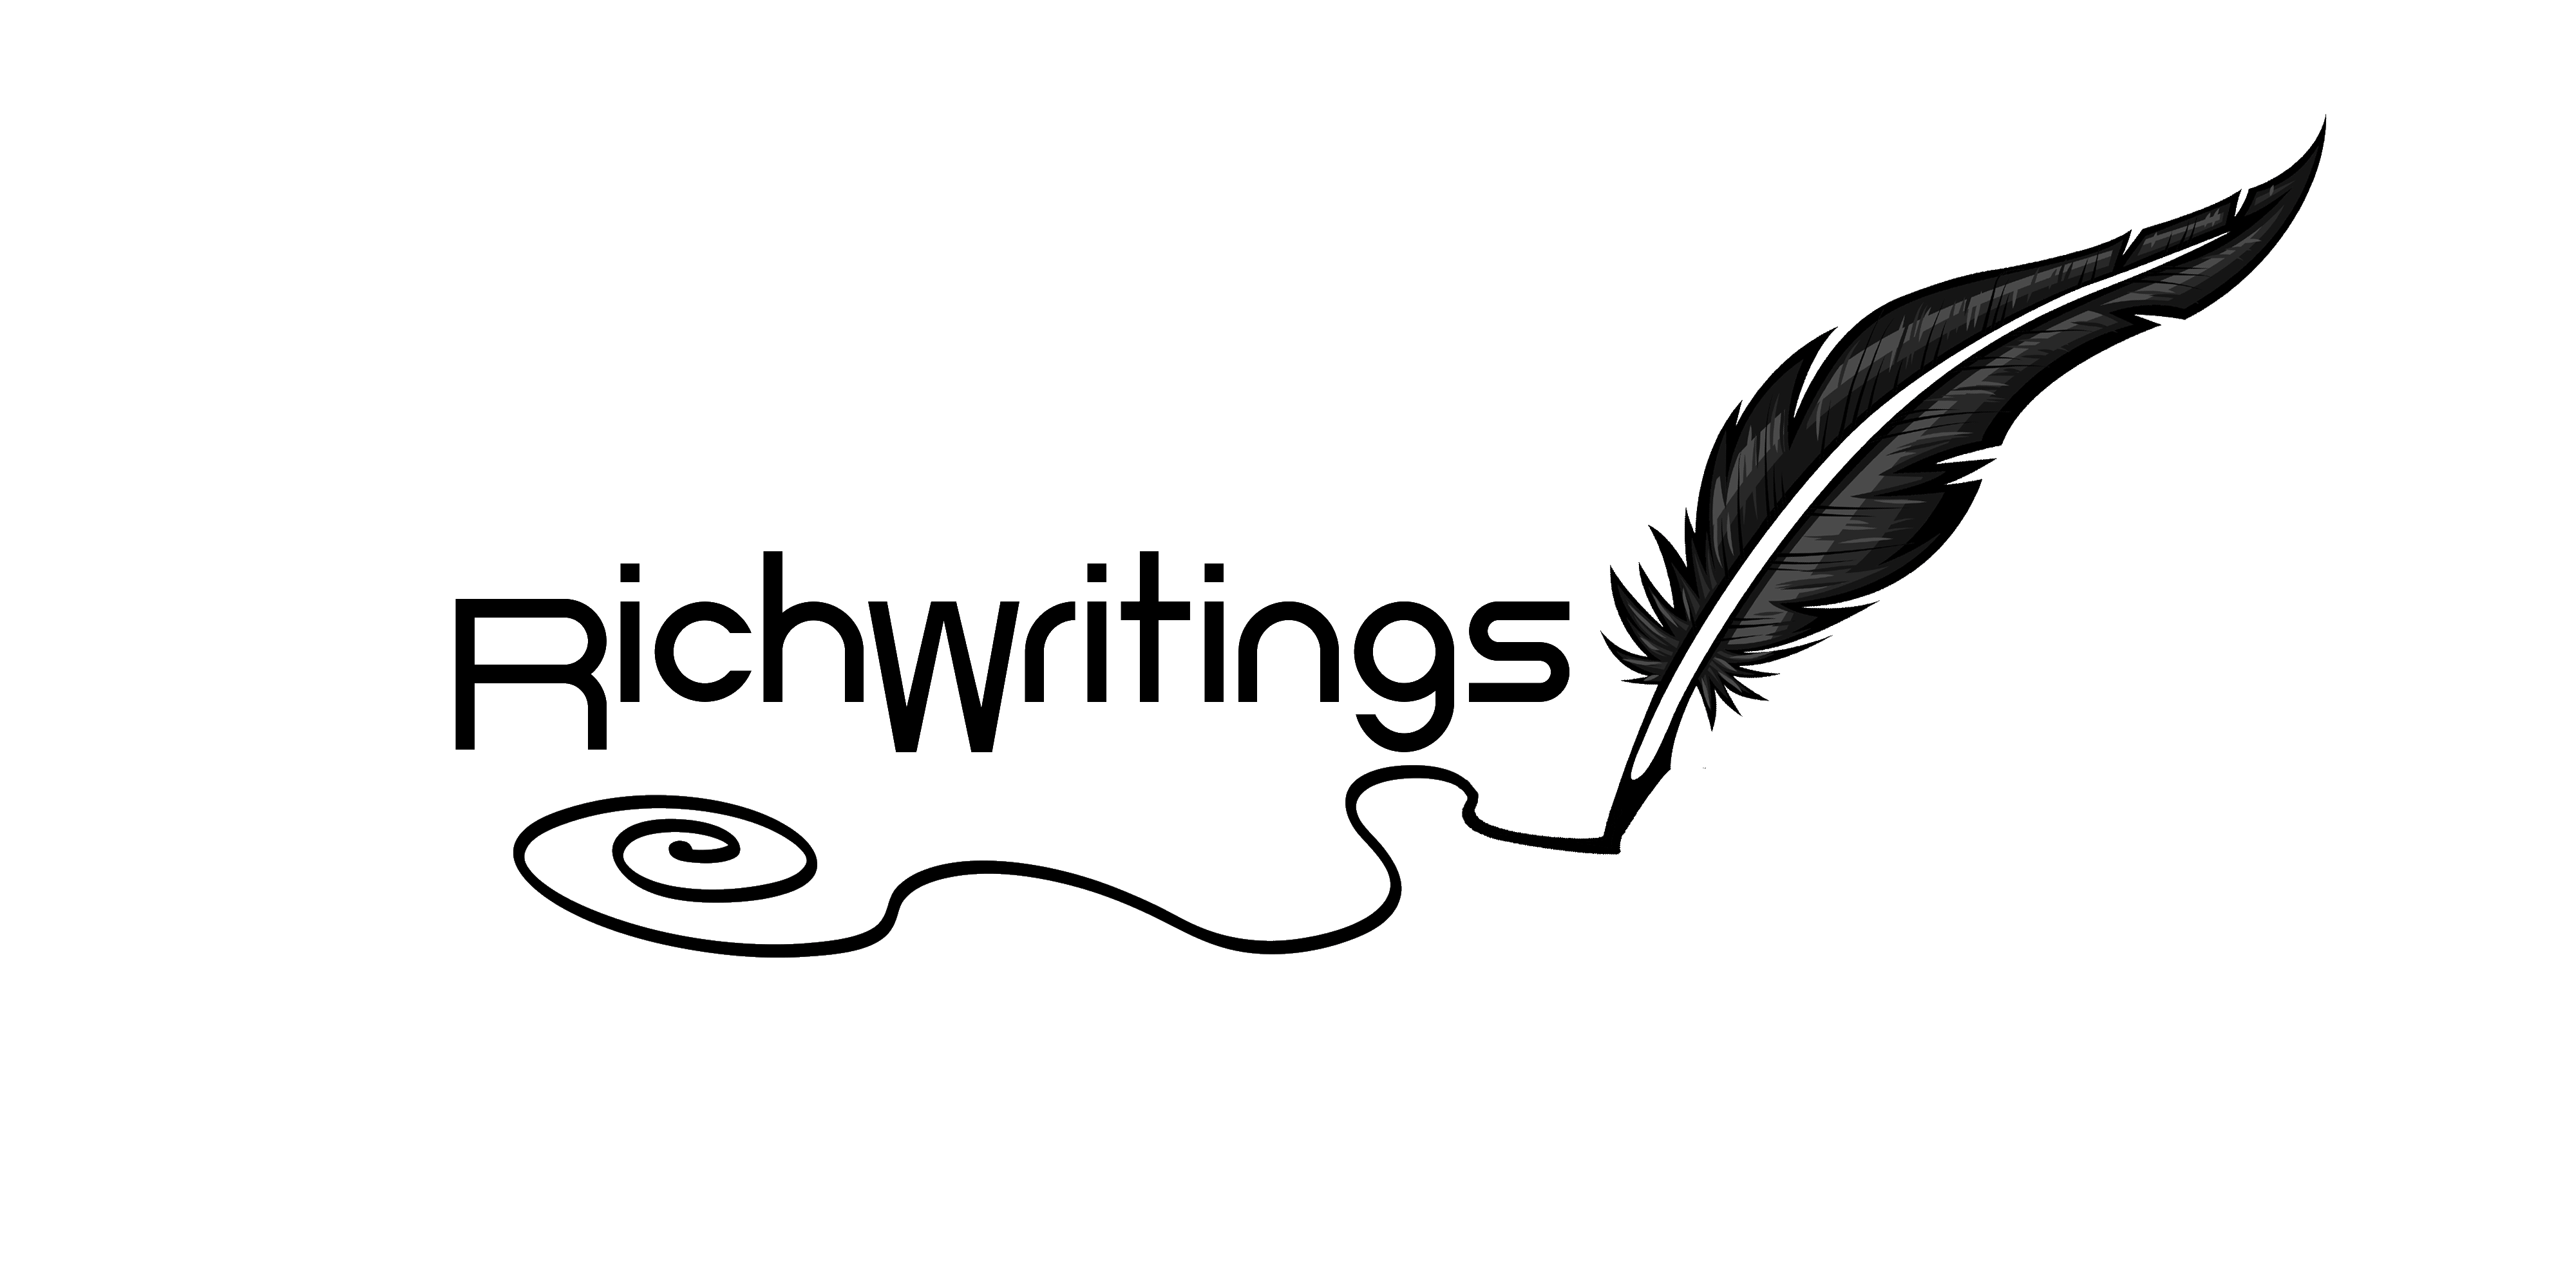 Freelance copywriting rich writings Séverine De Ryck